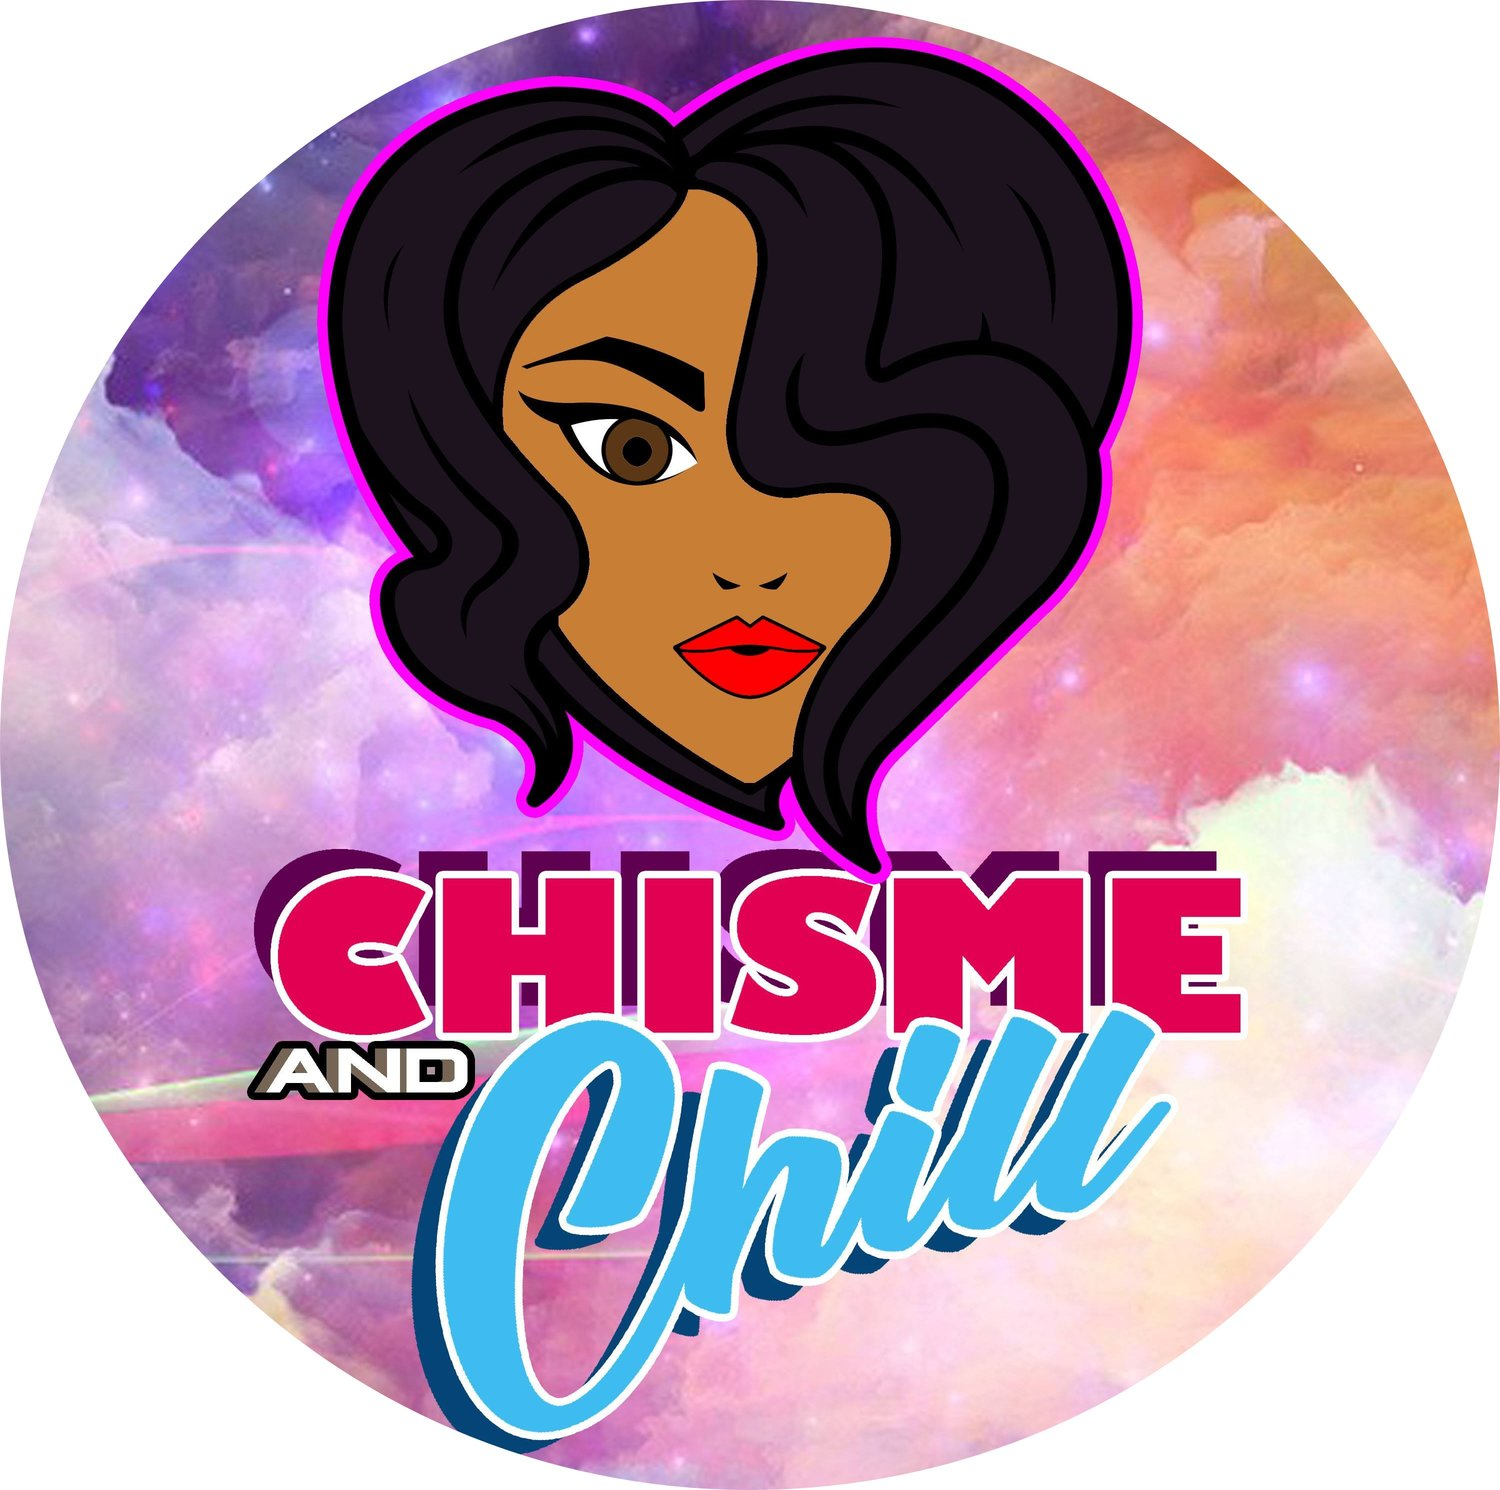 Chisme and Chill